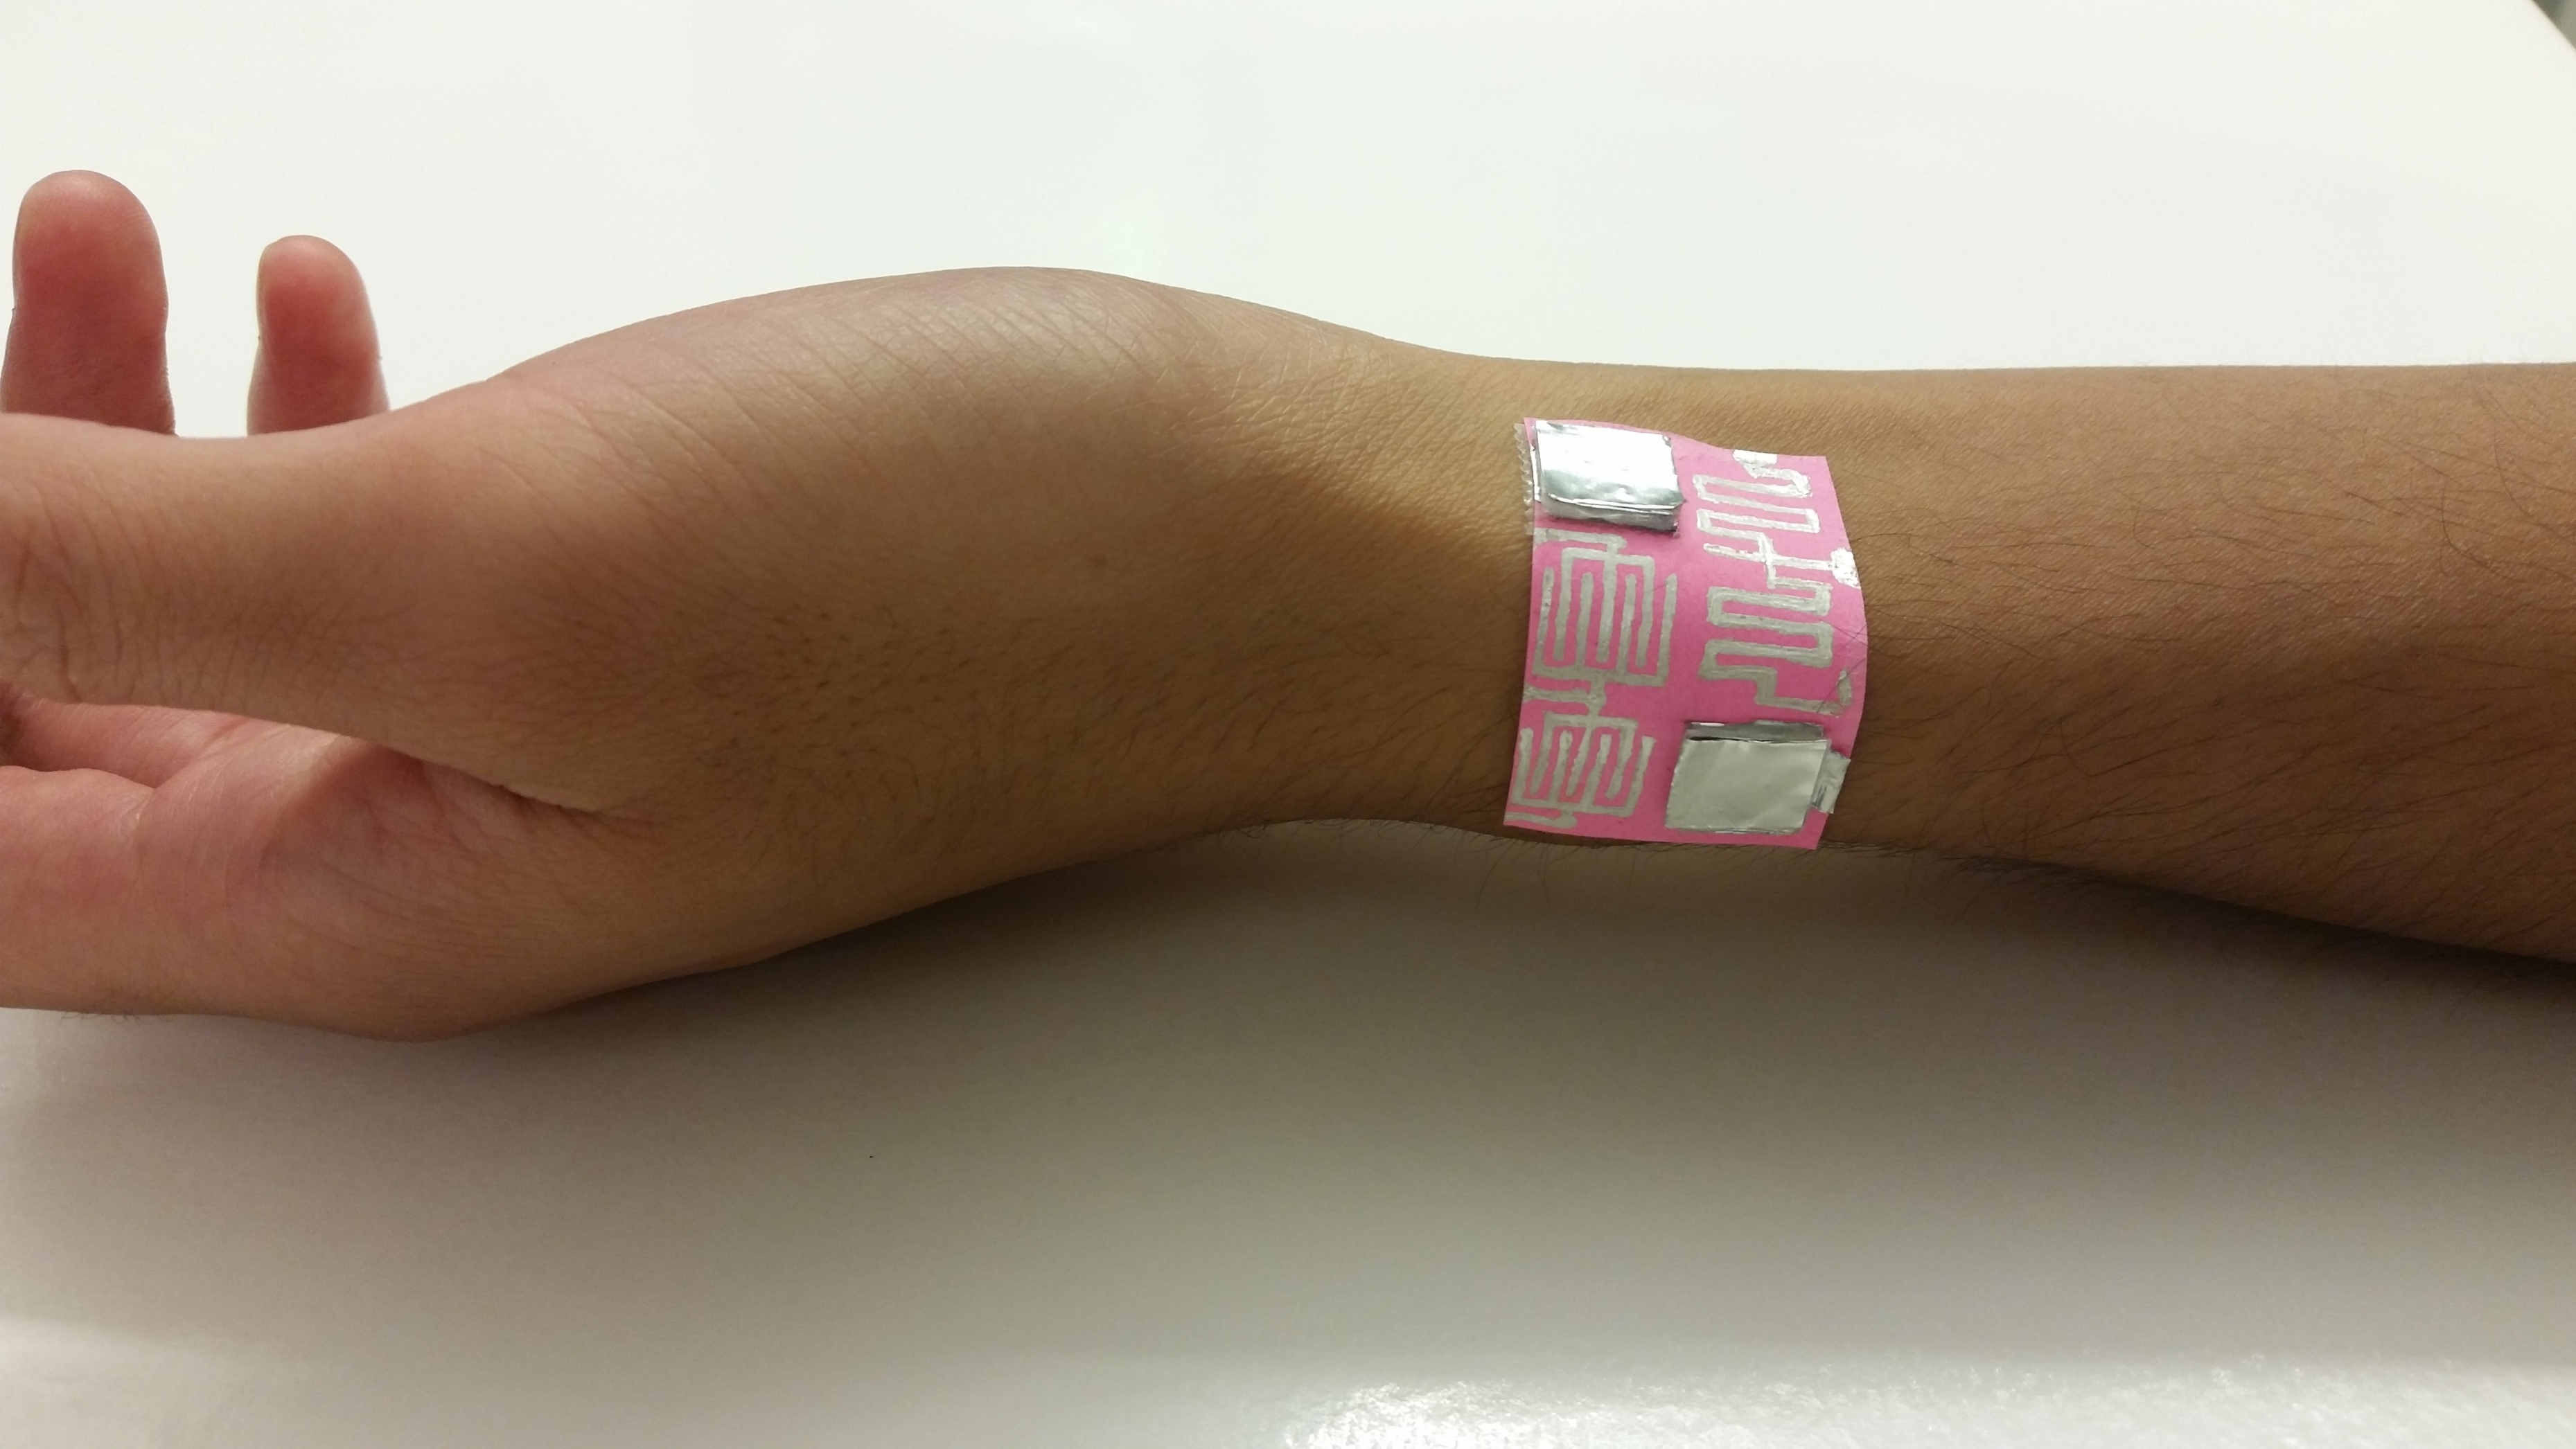 Wearable electronics using paper skin